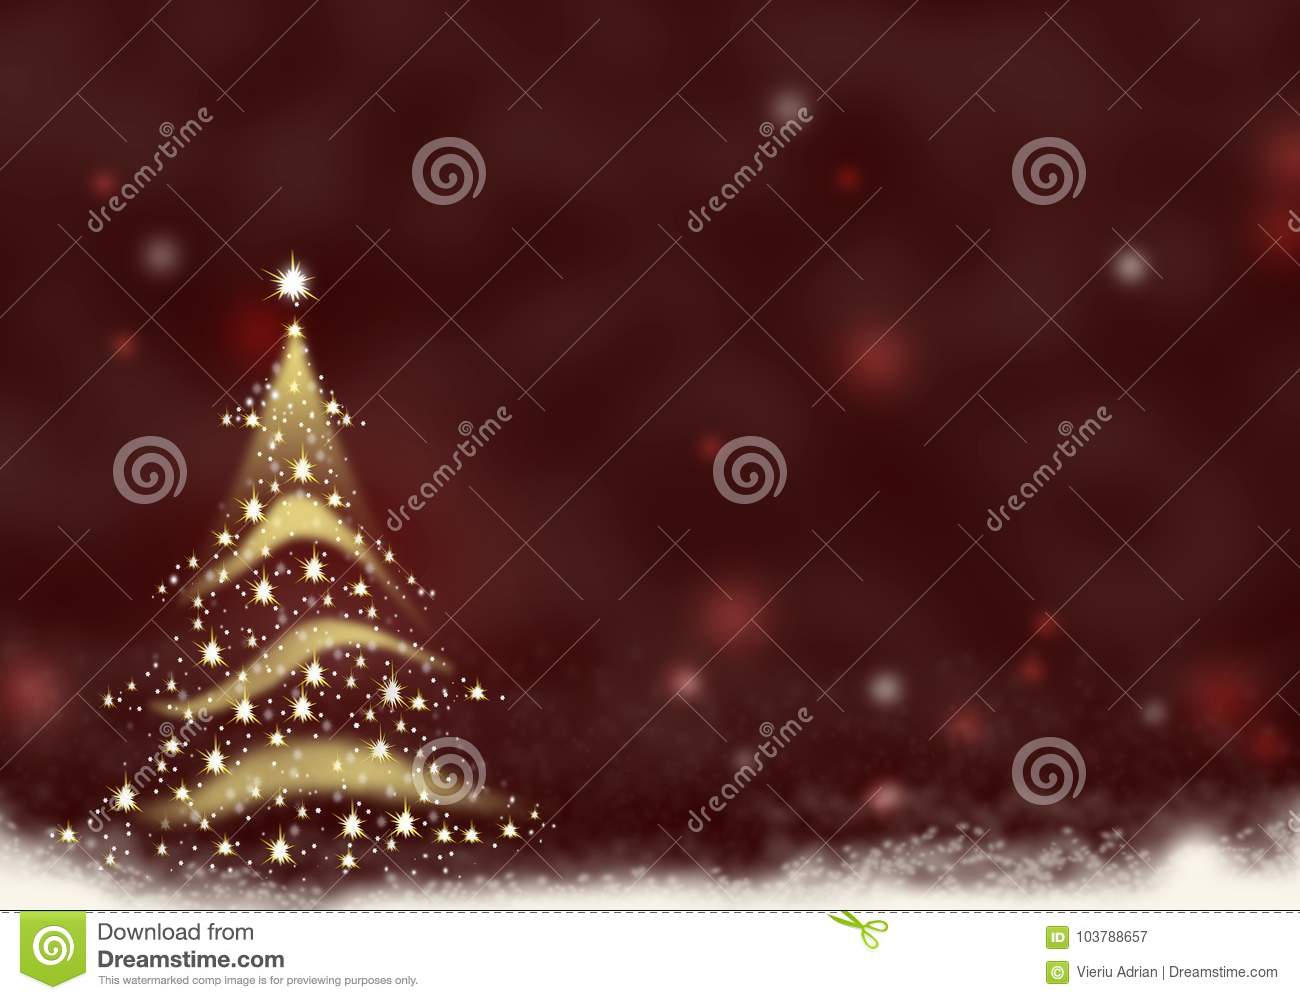 Free Illustration Background Christmas Red Gold: Christmas Tree Gold Formed From Stars Background Red Text